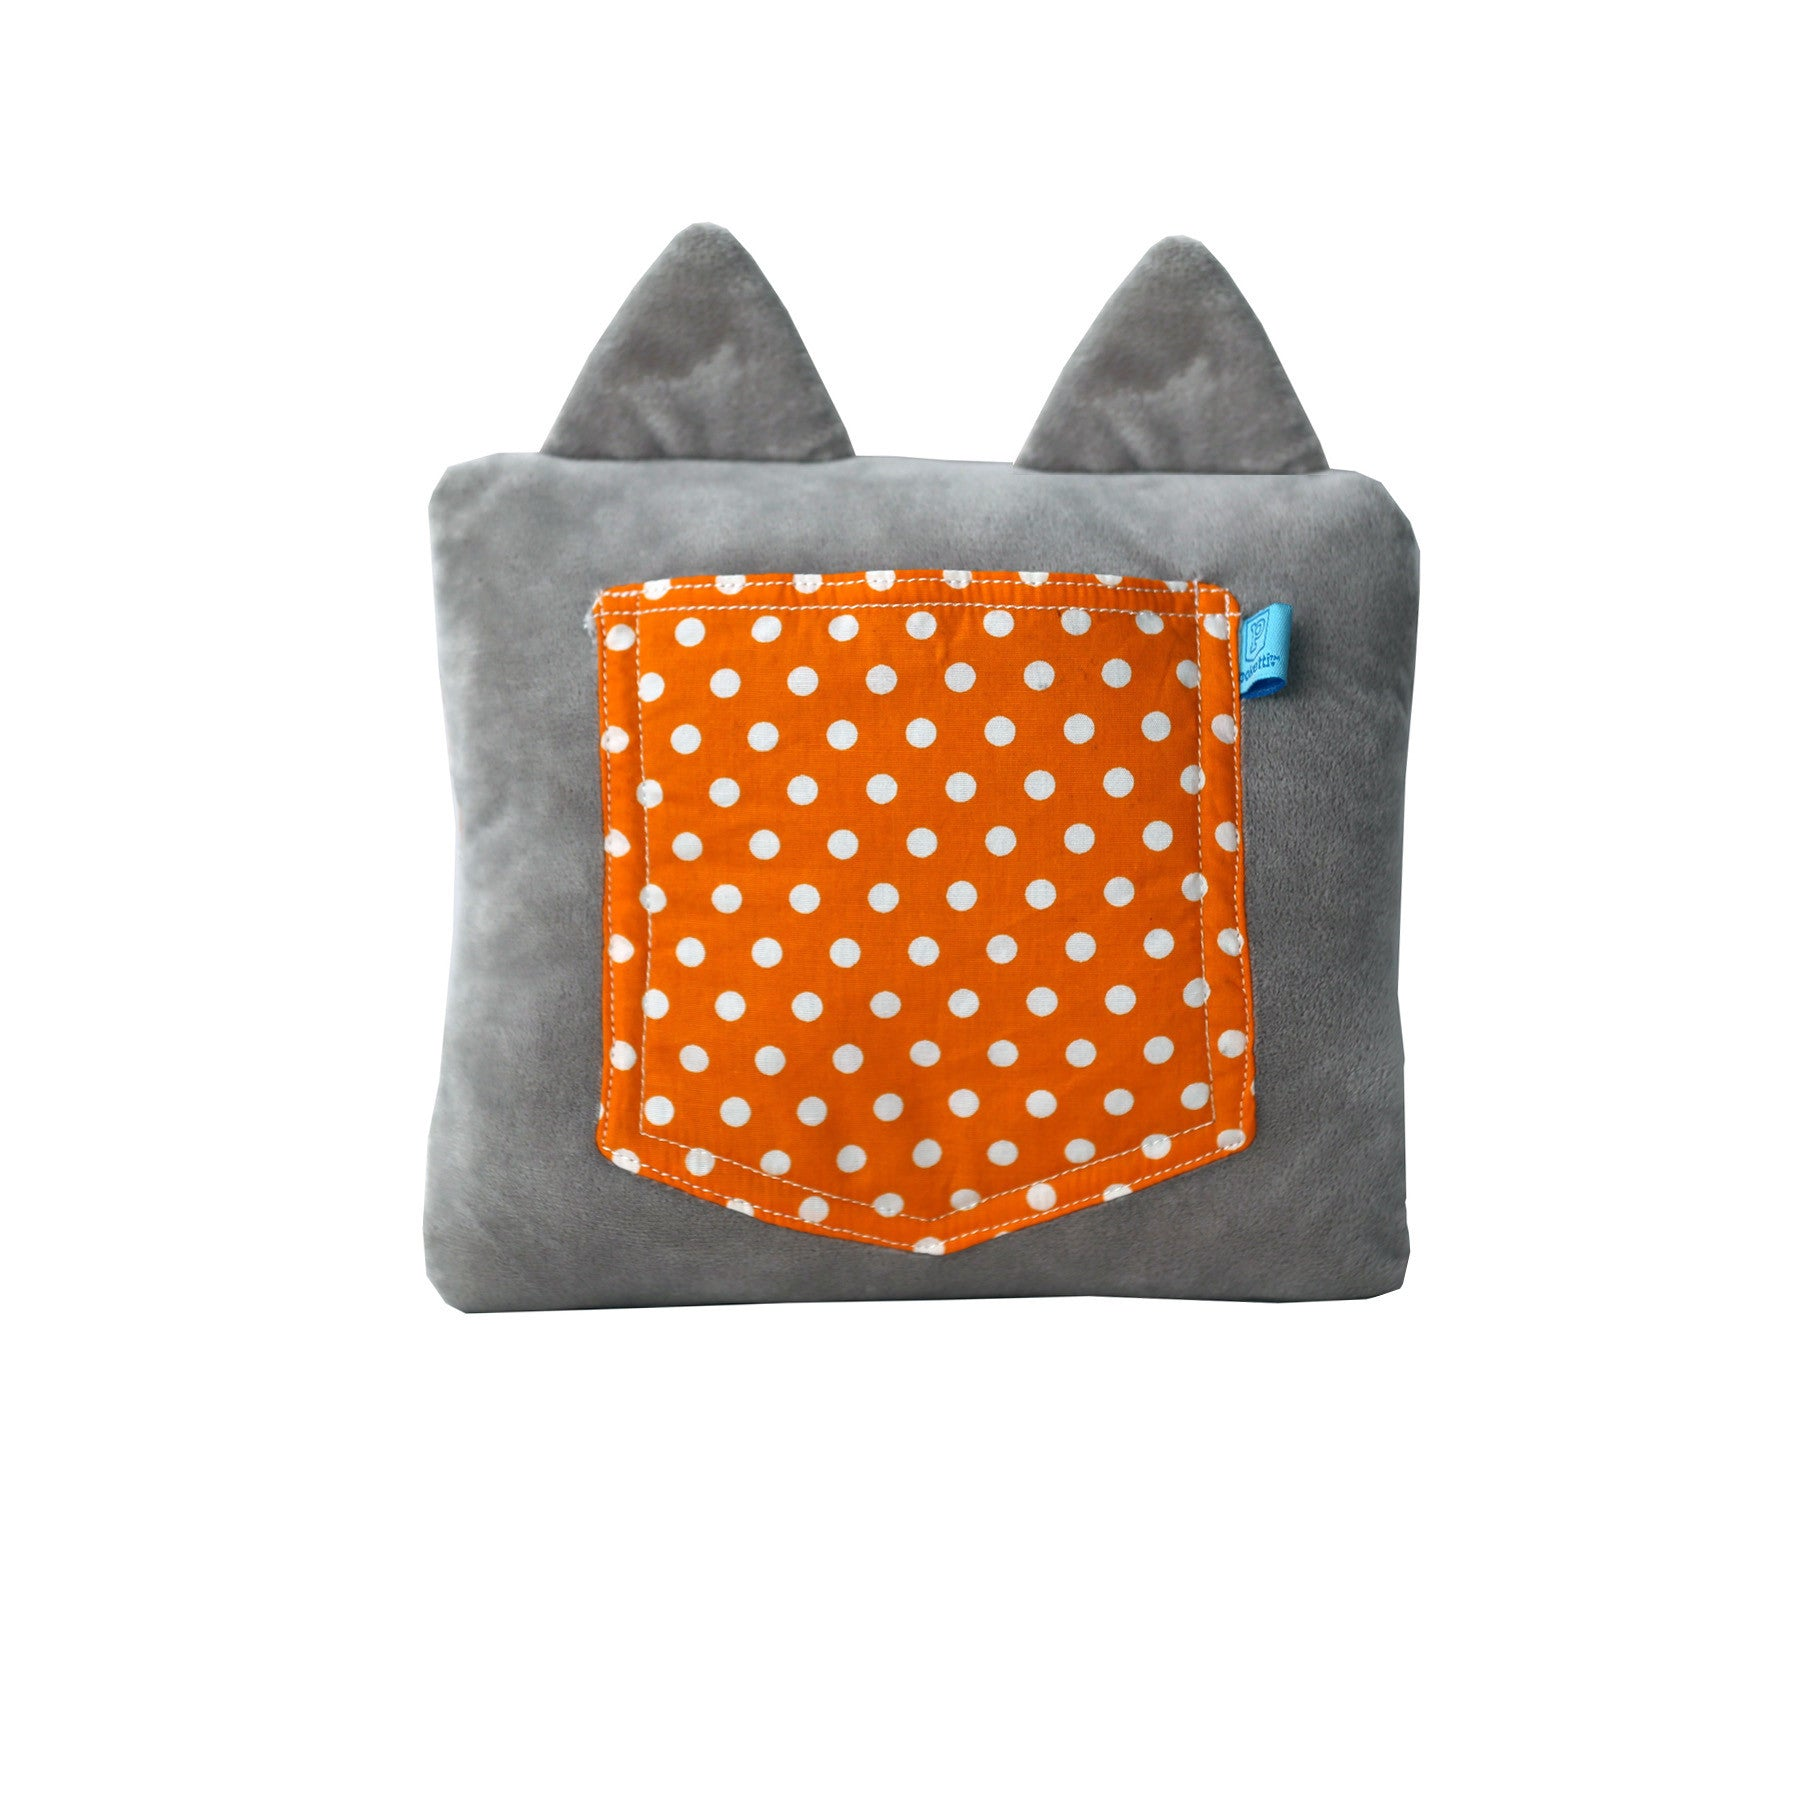 Poketti Kitty Cat Plush Pillow with a Pocket - Back